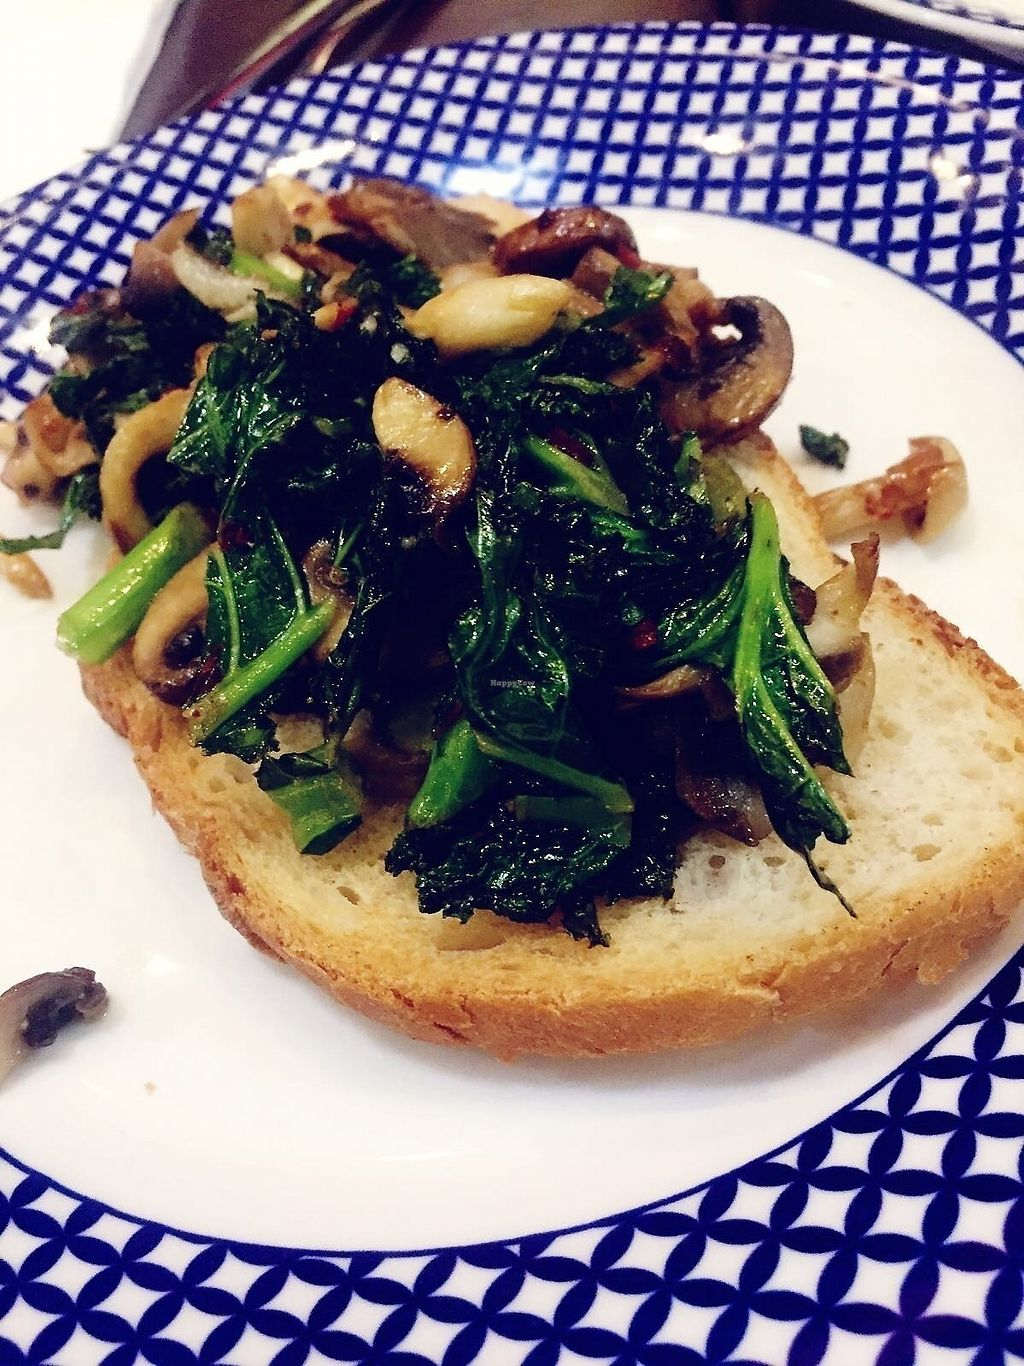 """Photo of Carluccio's - Airport T5  by <a href=""""/members/profile/TARAMCDONALD"""">TARAMCDONALD</a> <br/>Starter dish! Delicious, kale and mushroom on toast  <br/> November 16, 2017  - <a href='/contact/abuse/image/105098/326105'>Report</a>"""